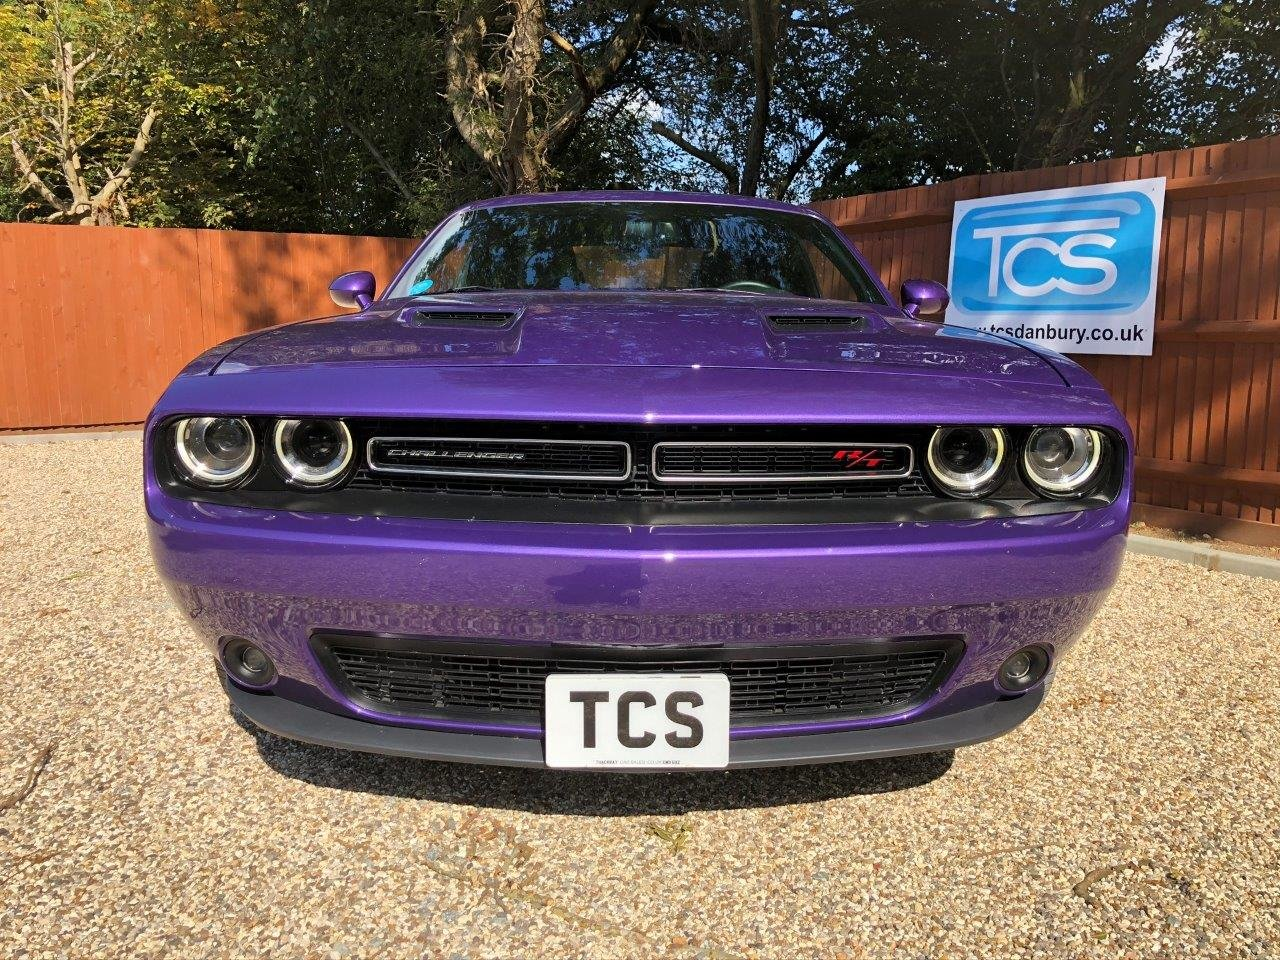 2016 Challenger R/T HEMI V8 in Plumb Crazy Purple For Sale (picture 3 of 6)